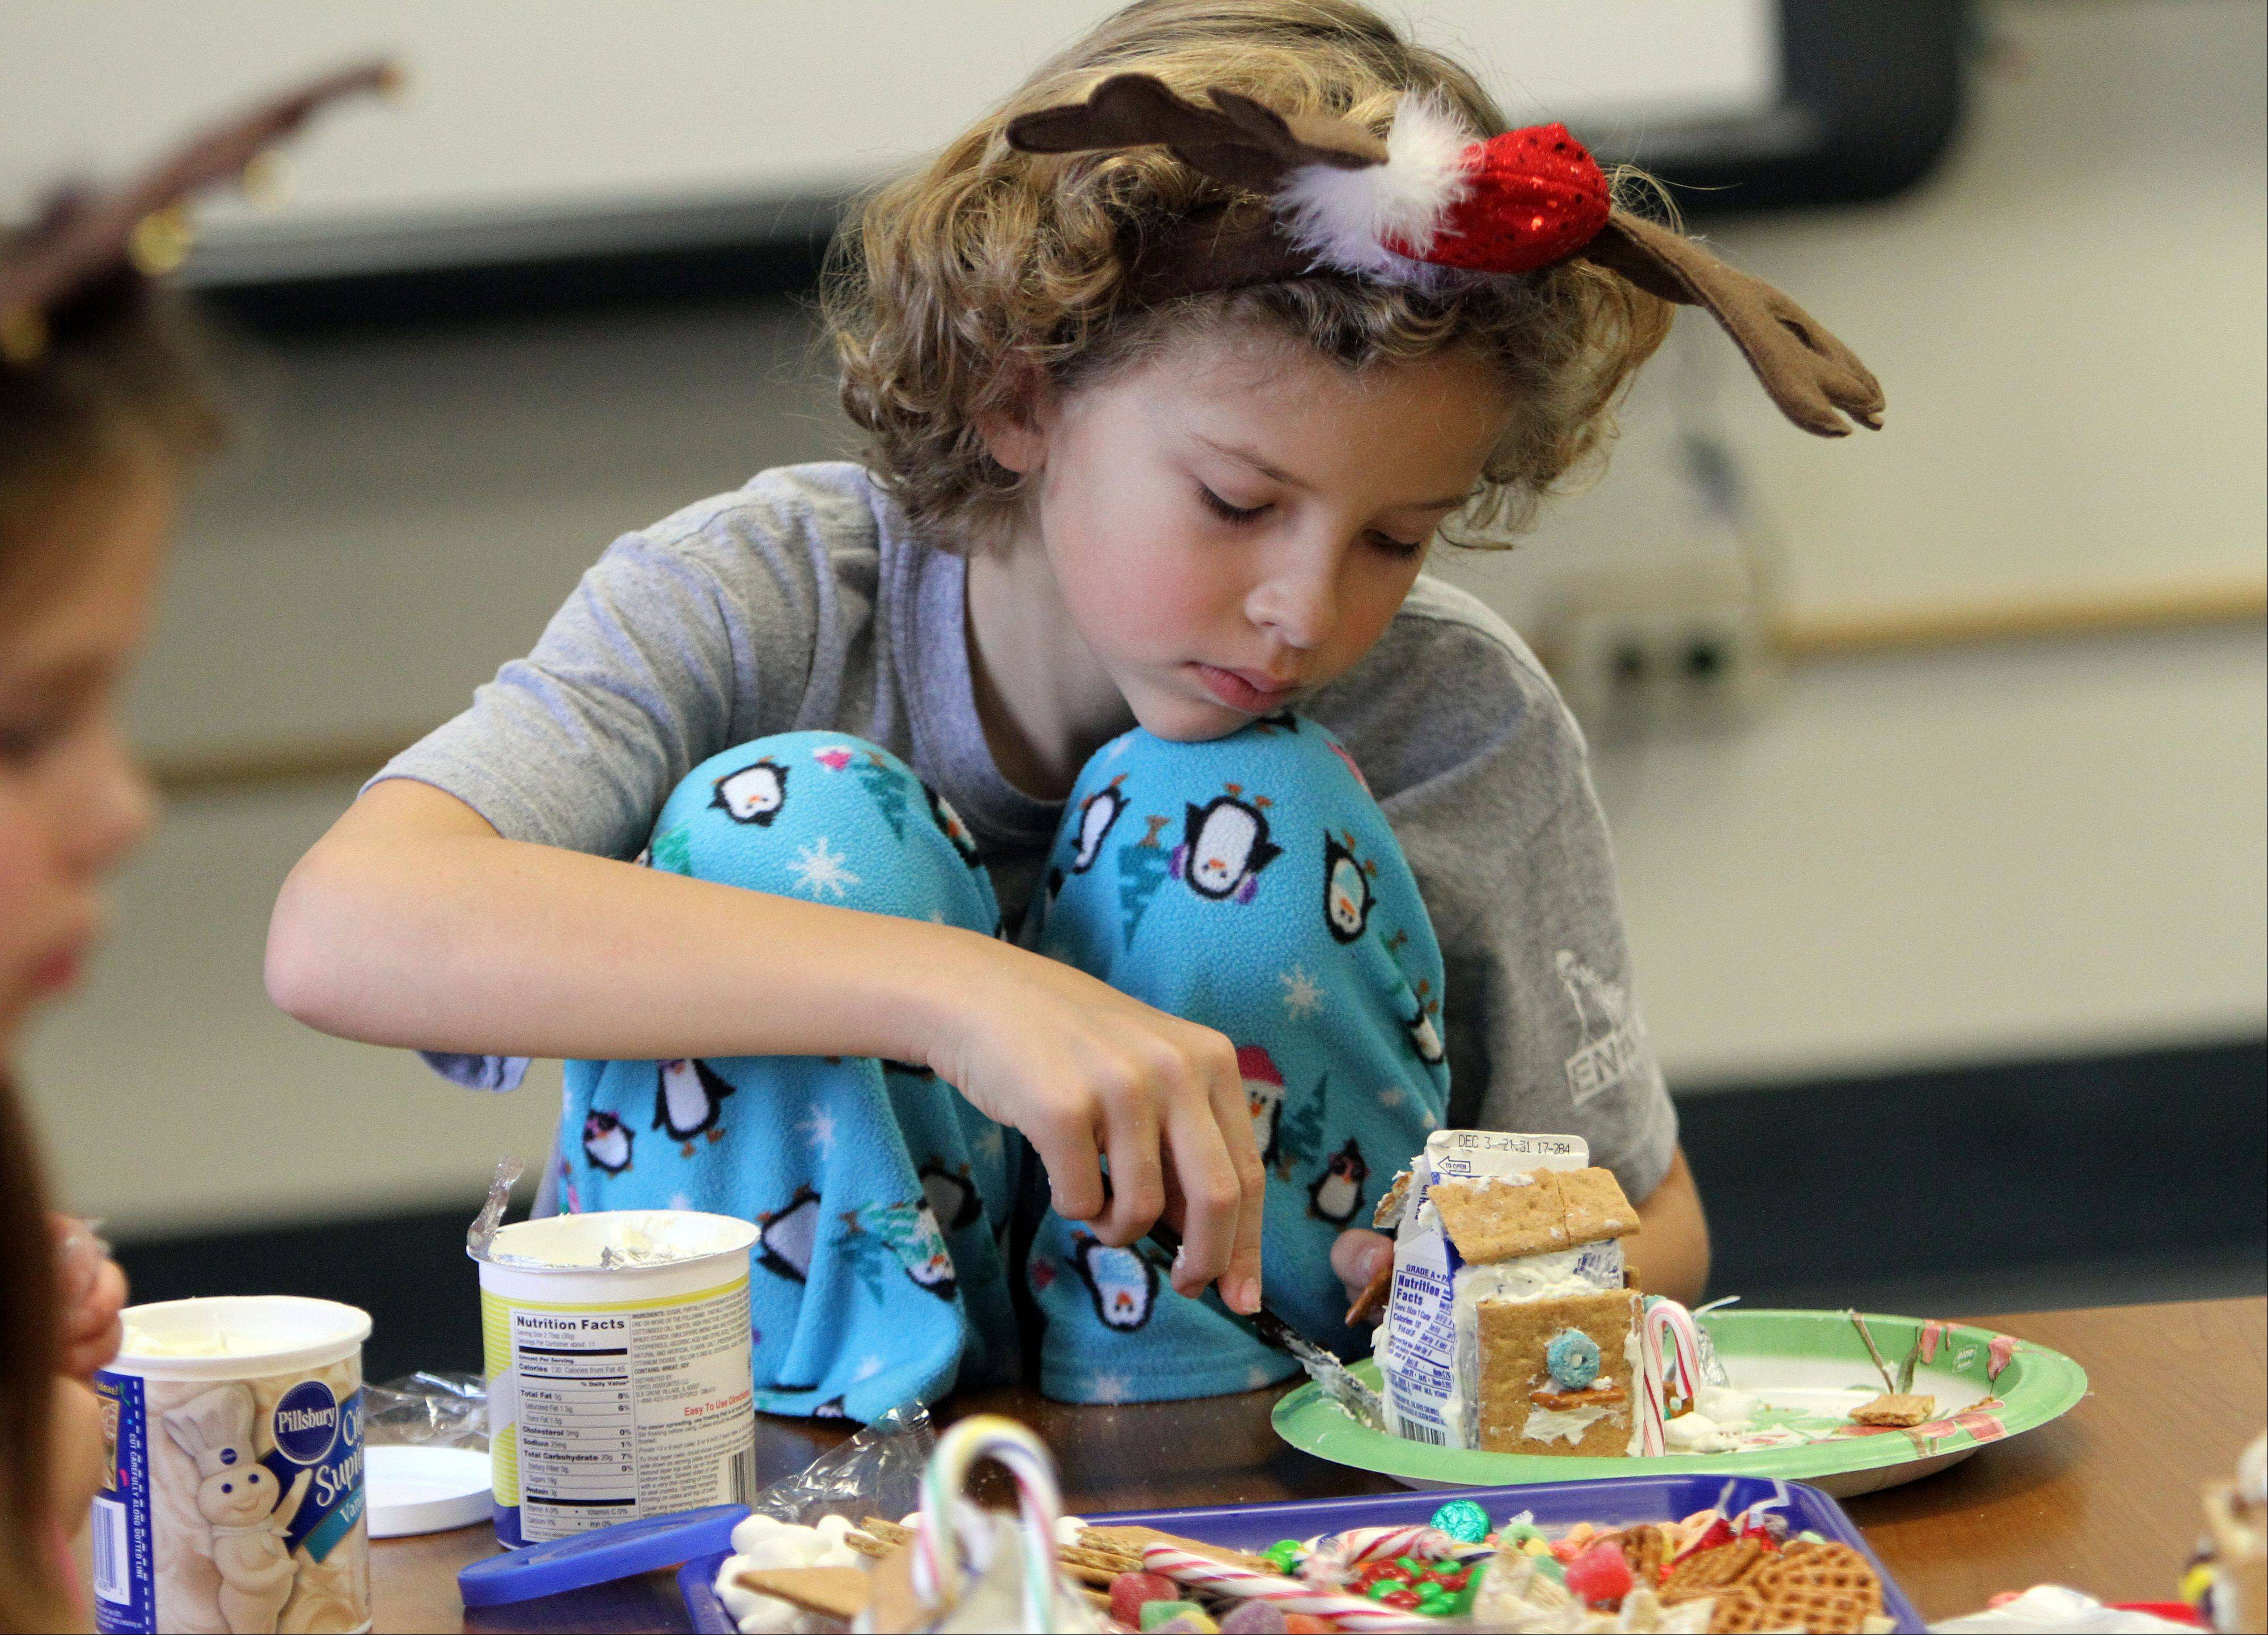 Rockland School fifth-grader Jamie Nicholson works on her gingerbread house as the fifth- and first-graders teamed up on the project in Libertyville.